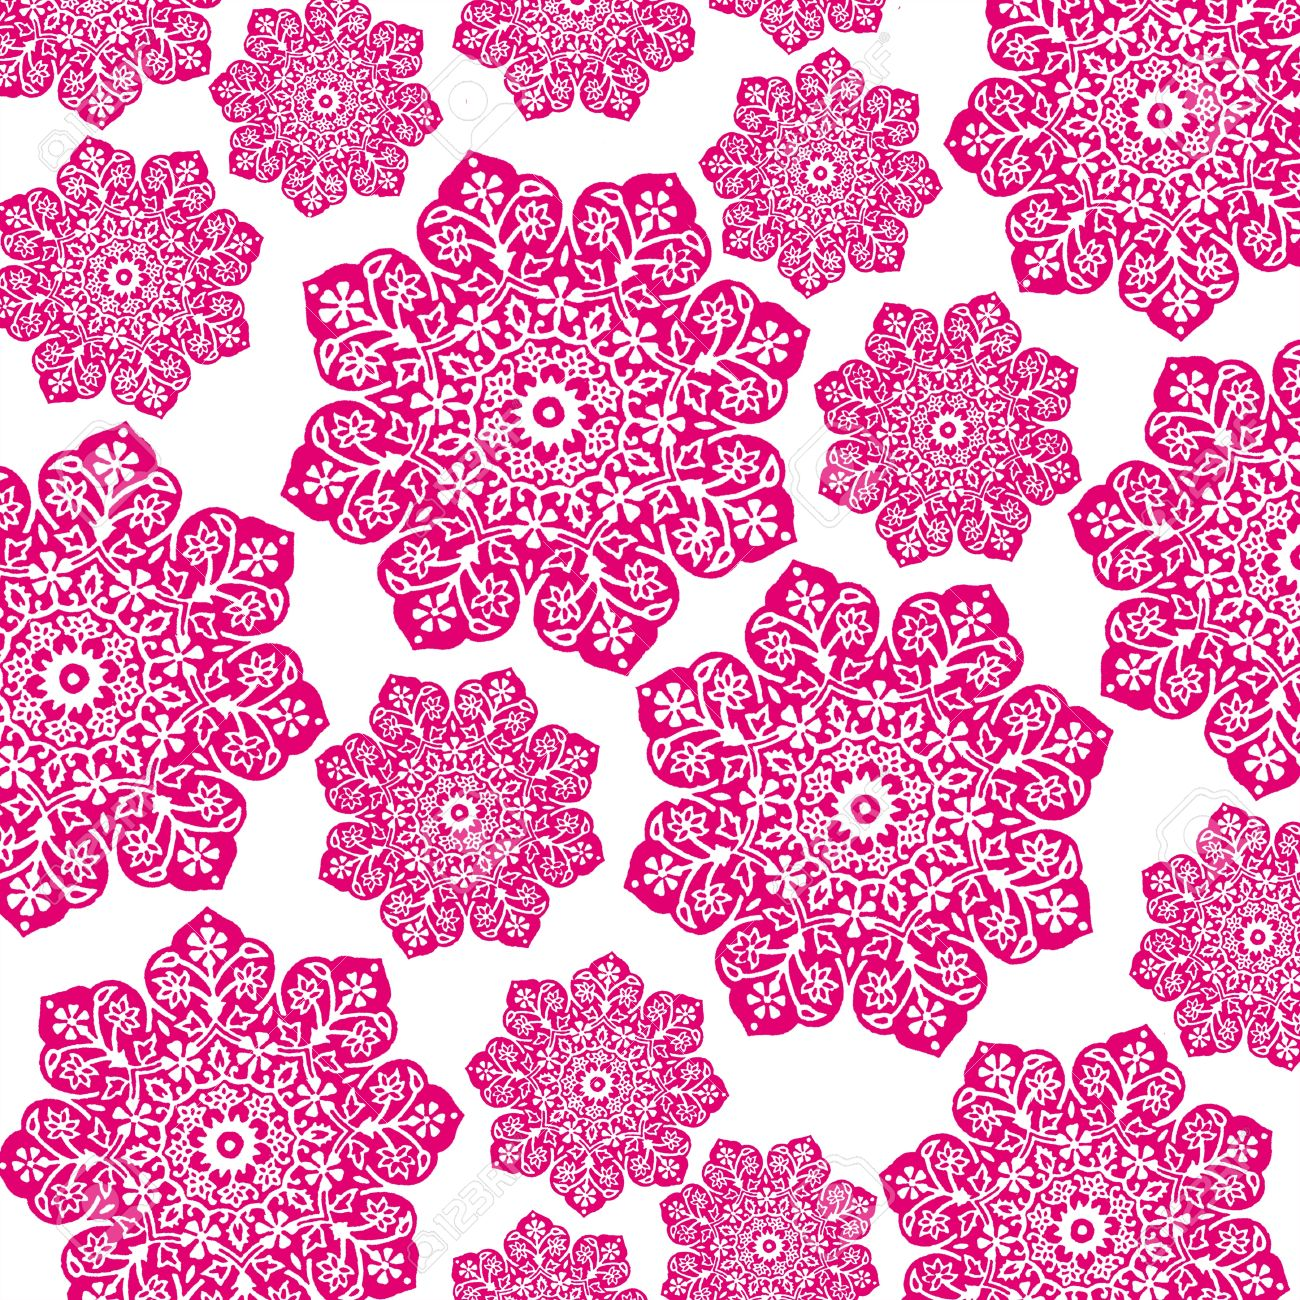 Hot Pink White Floral Batik Stock Photo Picture And Royalty